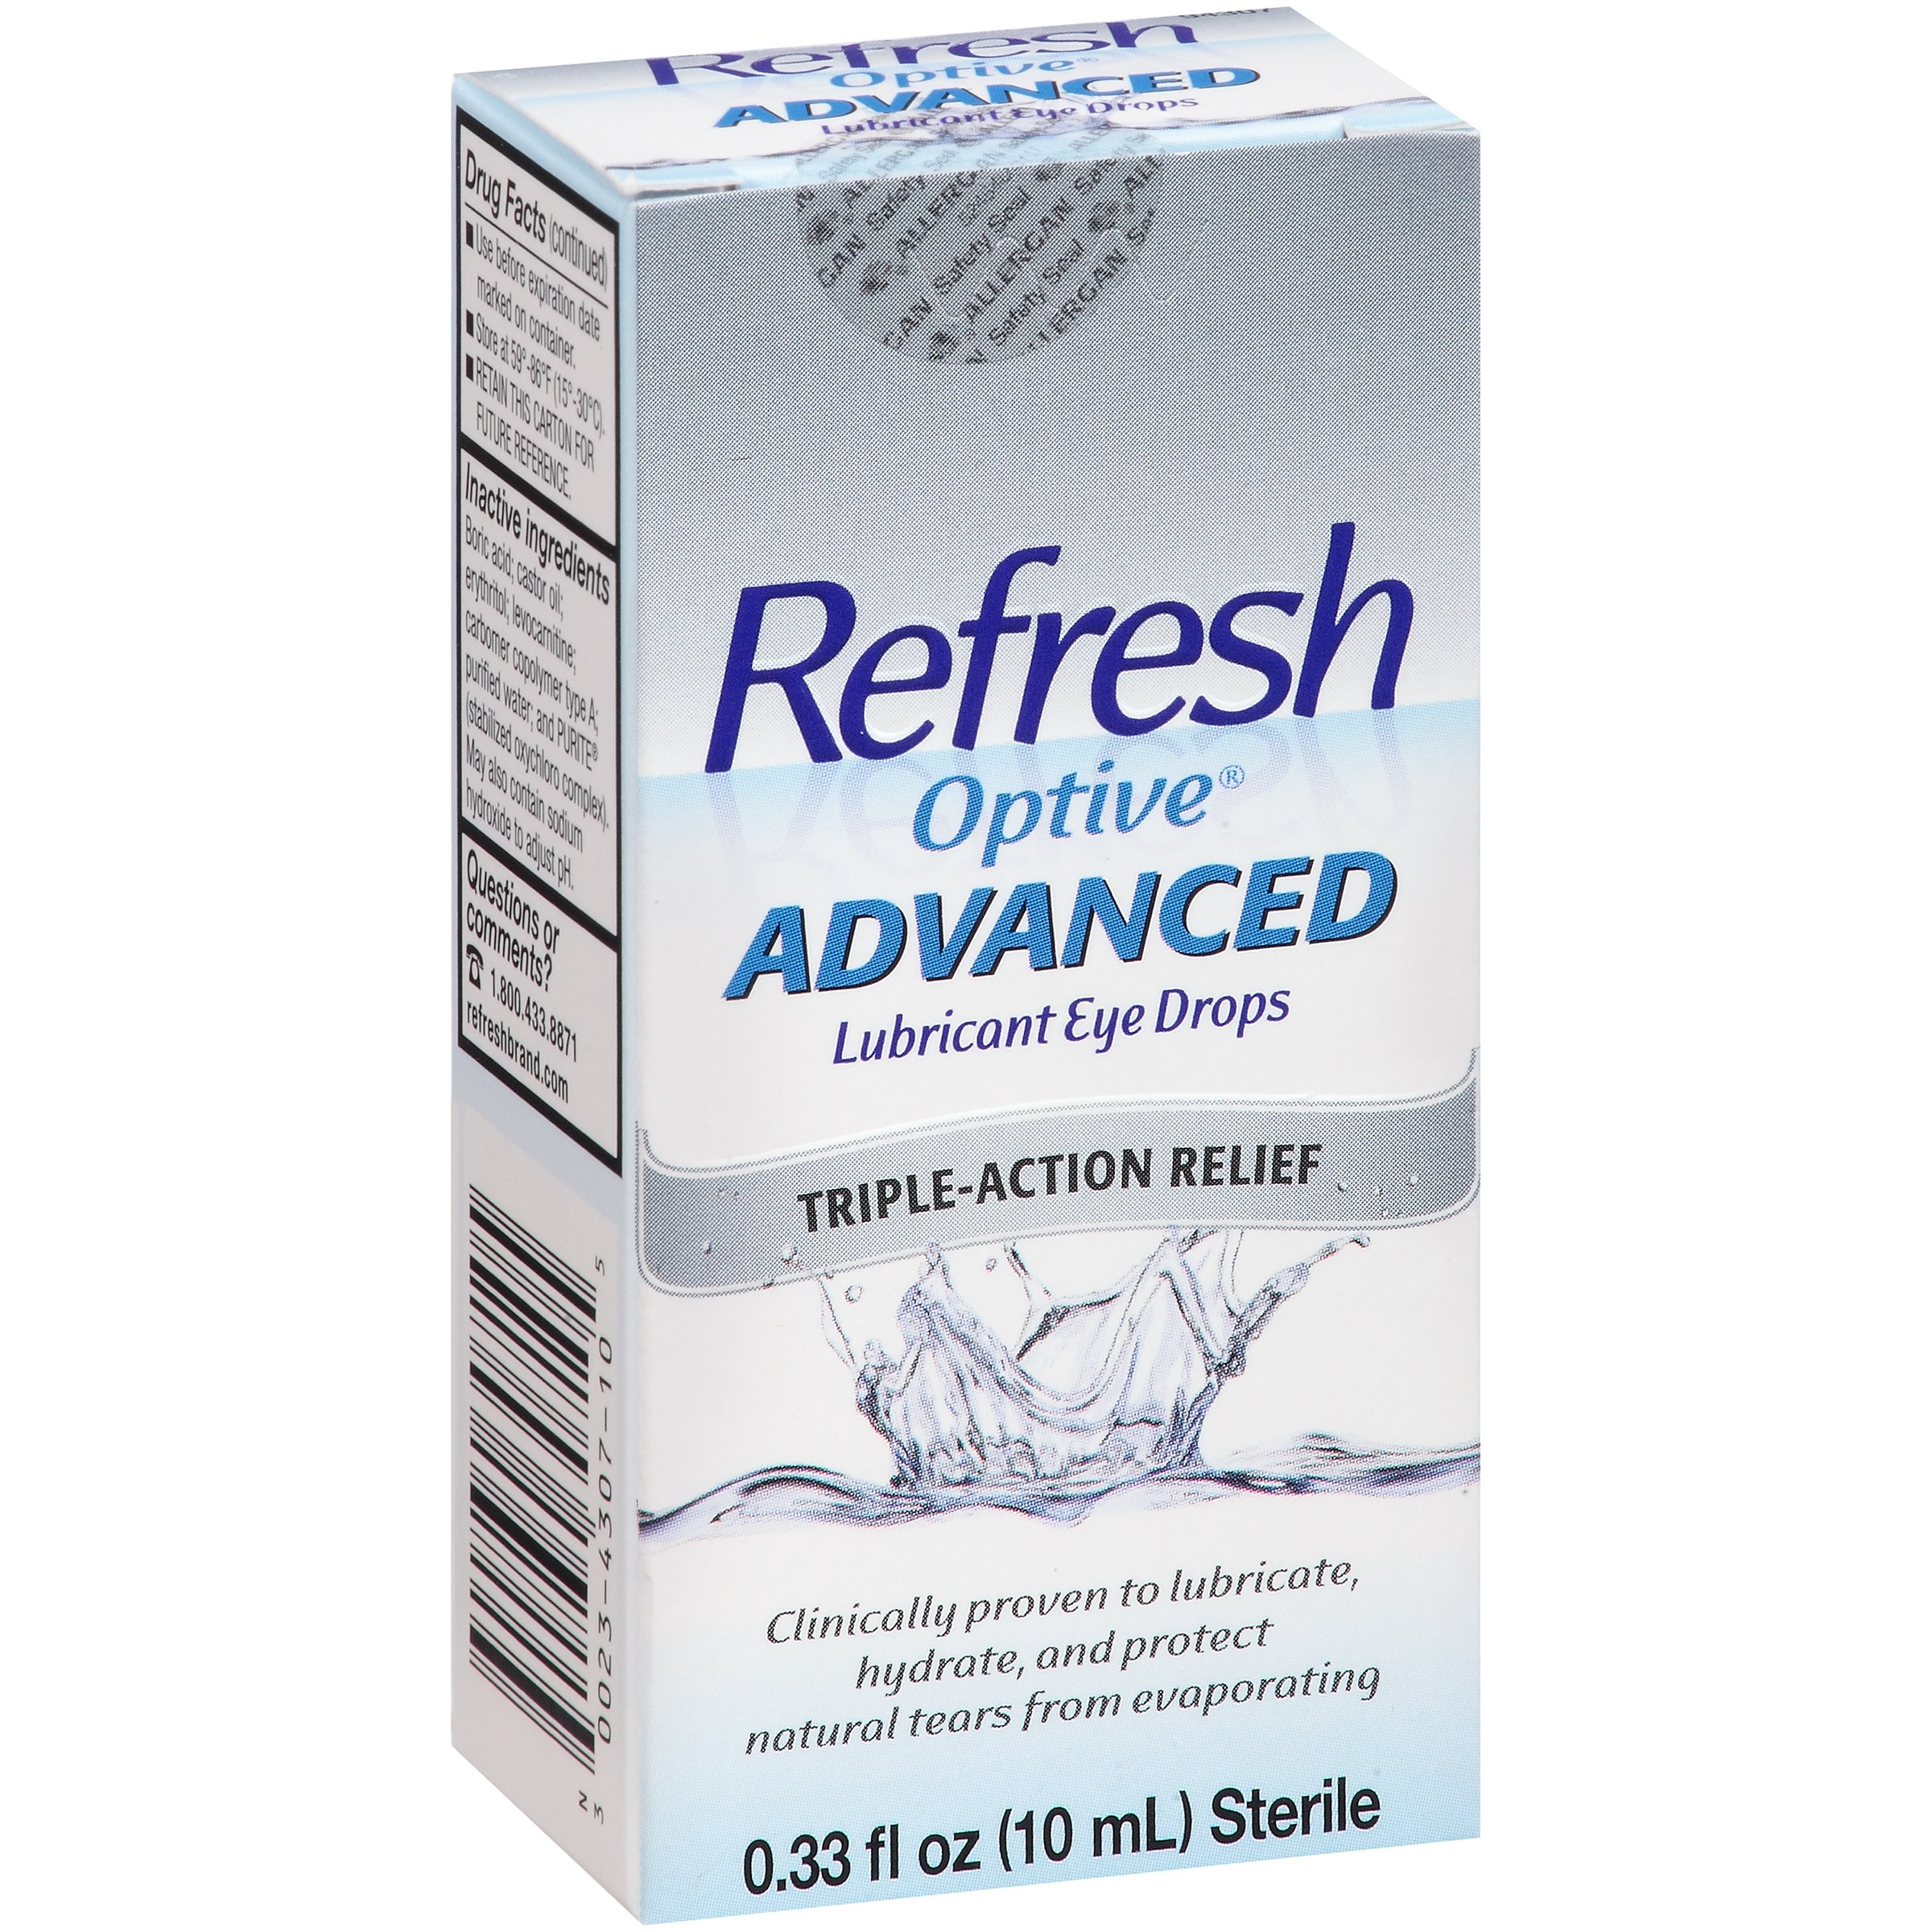 Refresh Optive® Advanced Lubricant Eye Drops 0.33 fl. oz. Box